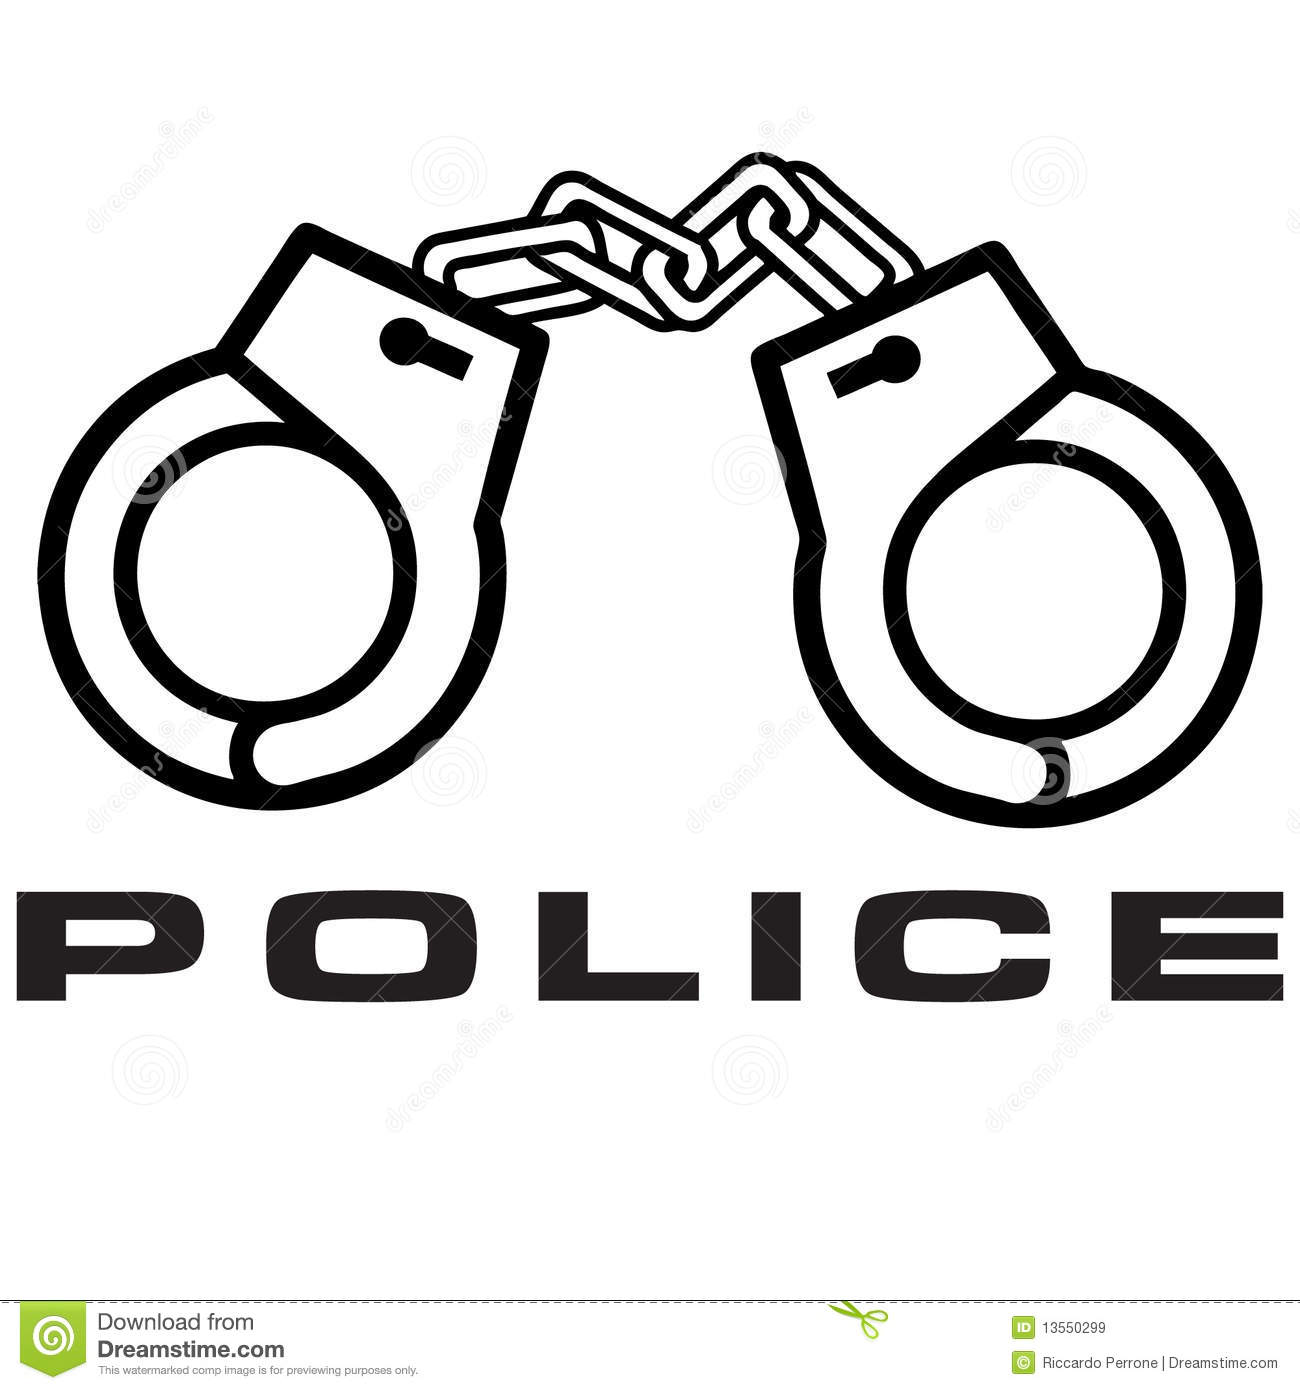 Royalty Free Stock Images  Police logo  Image  13550299